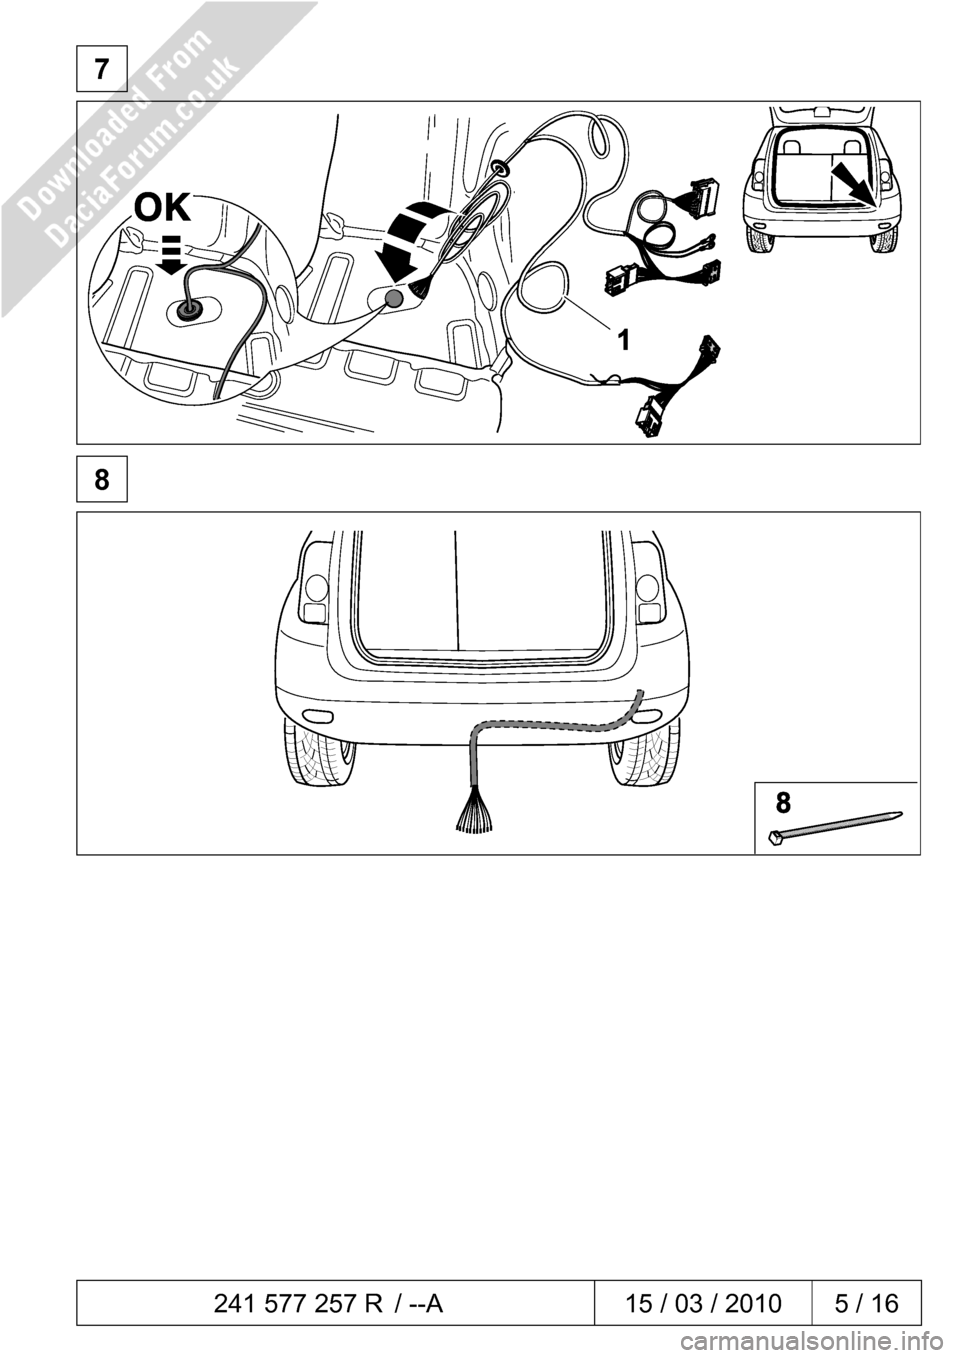 DACIA DUSTER 2010 1.G 13 Pin Towbar Fitting Guide Workshop Manual, Page 5